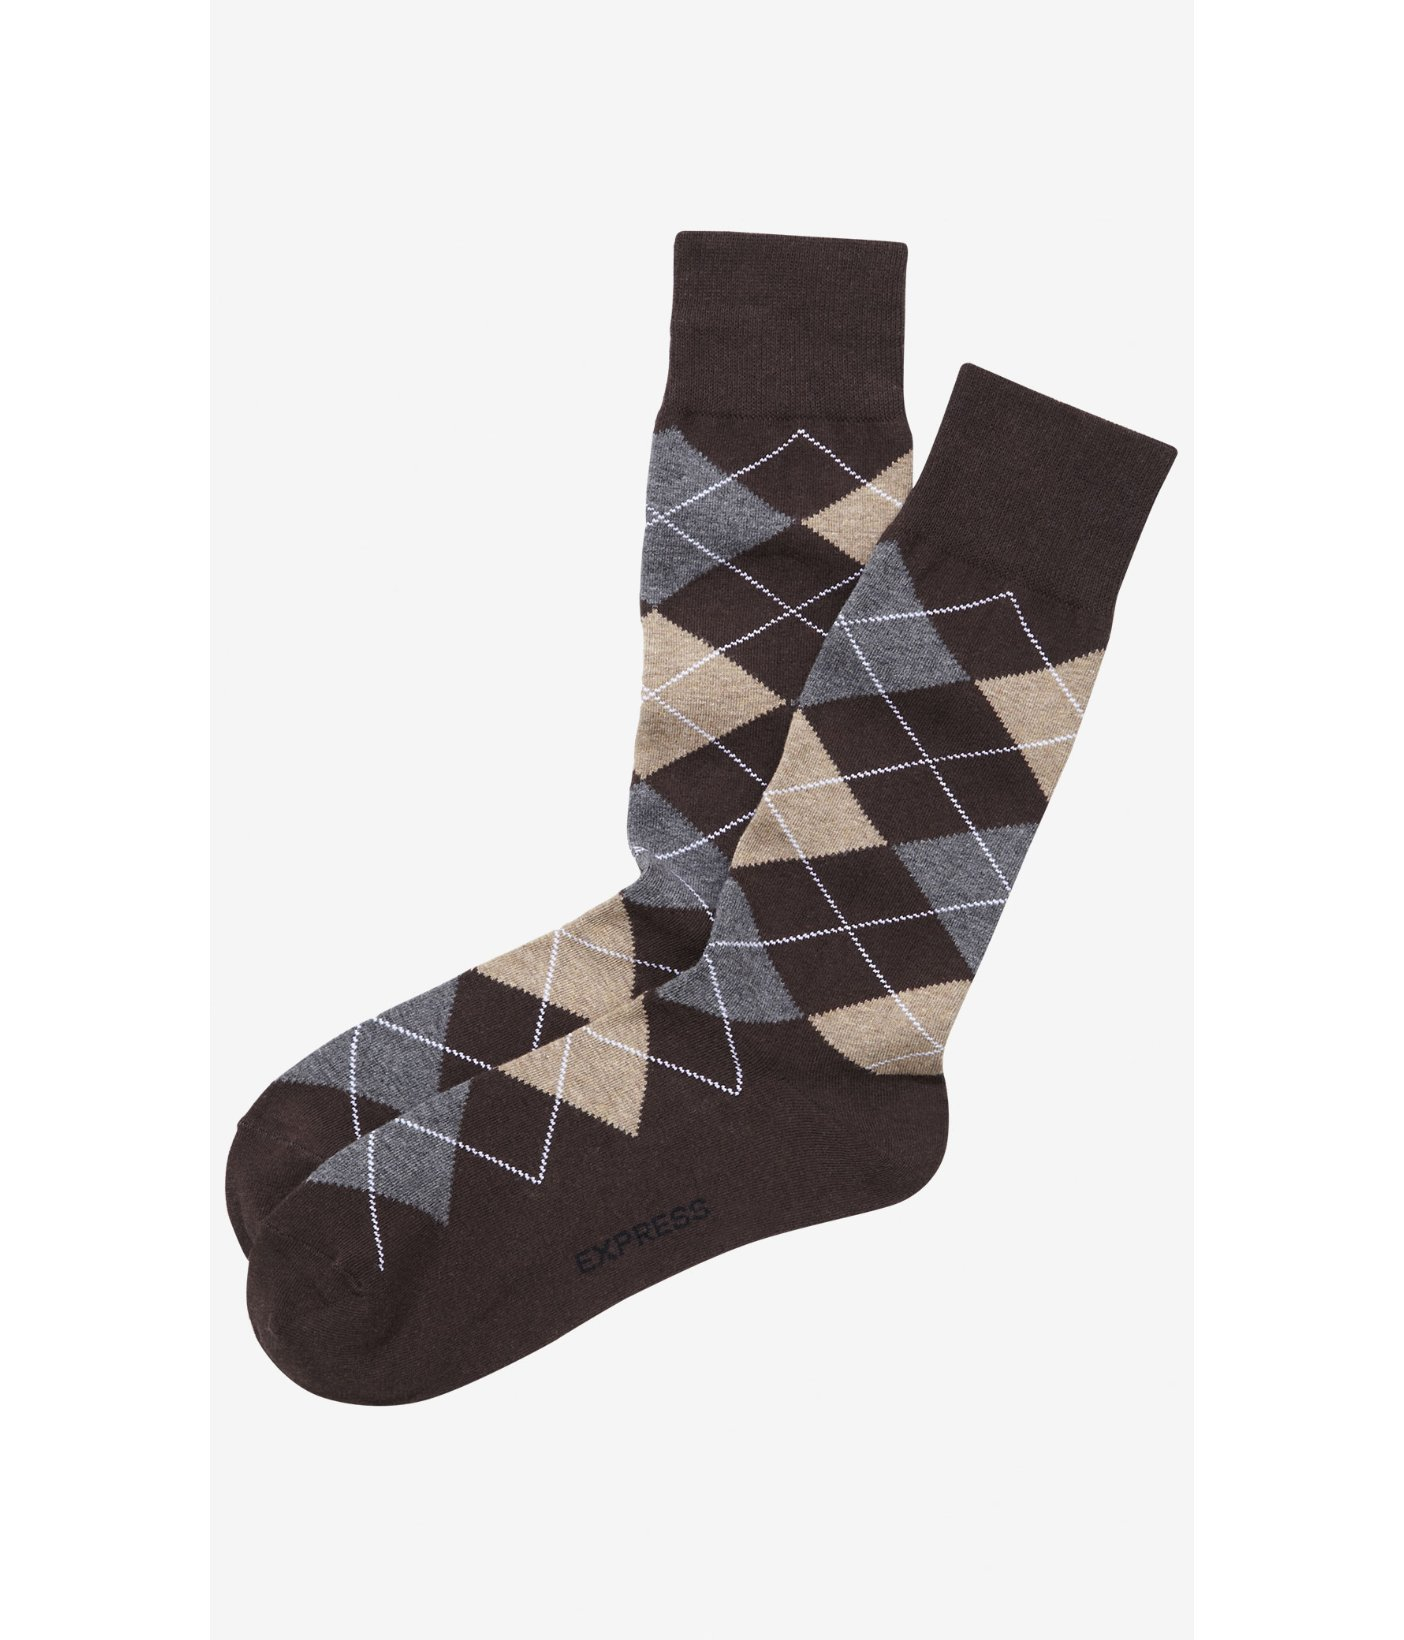 These socks are one of the thicker dress socks I've found. The only odd part was that these socks are ALL black. I received the same printed/argyle socks as shown in the picture, but the solid gray socks were solid BLACK.